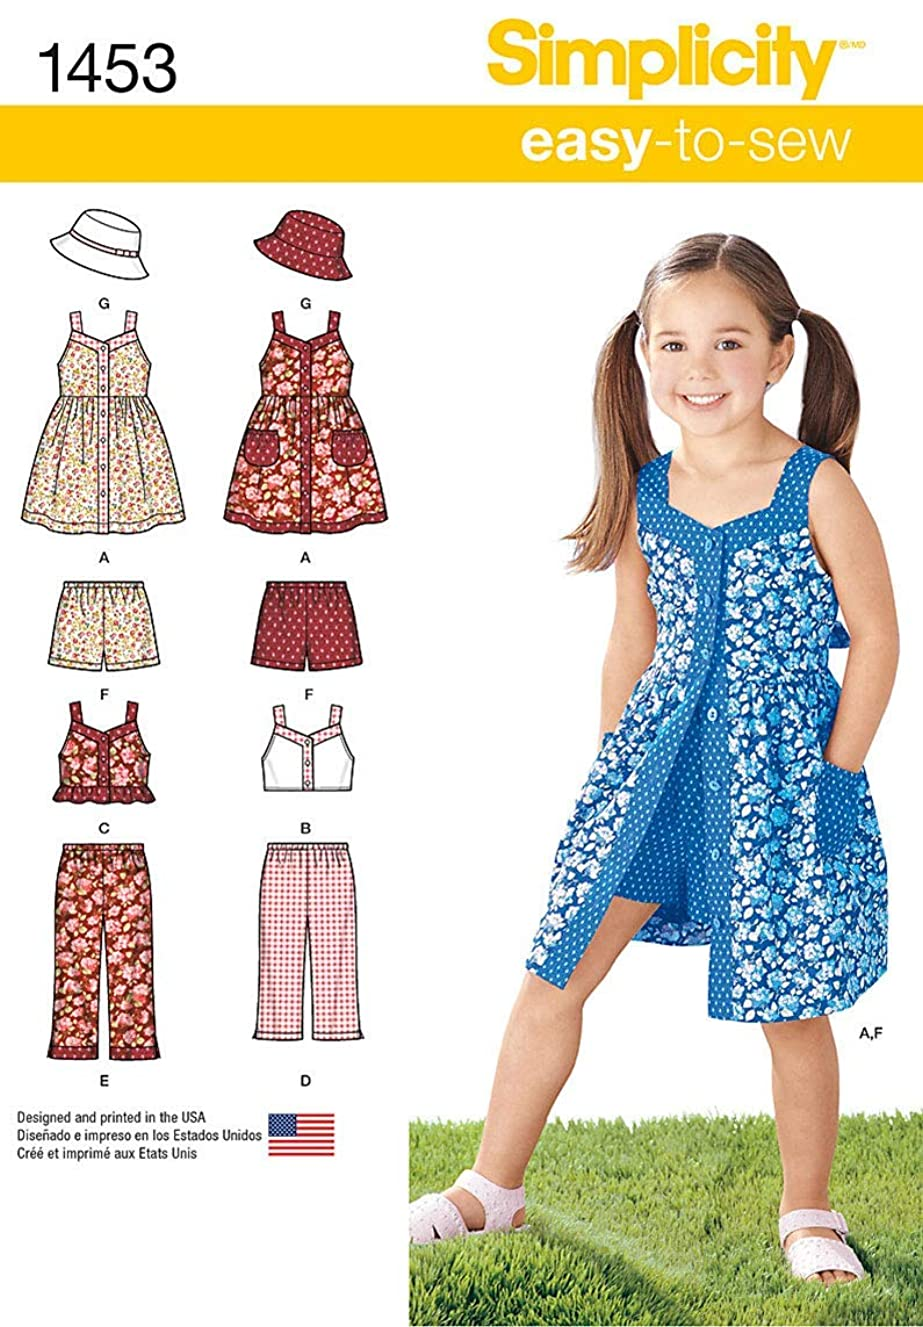 Simplicity 1453 Easy to Sew Girl's Dress, Top, Pants or Shorts and Hat Clothing Sewing Patterns, Sizes 3-8